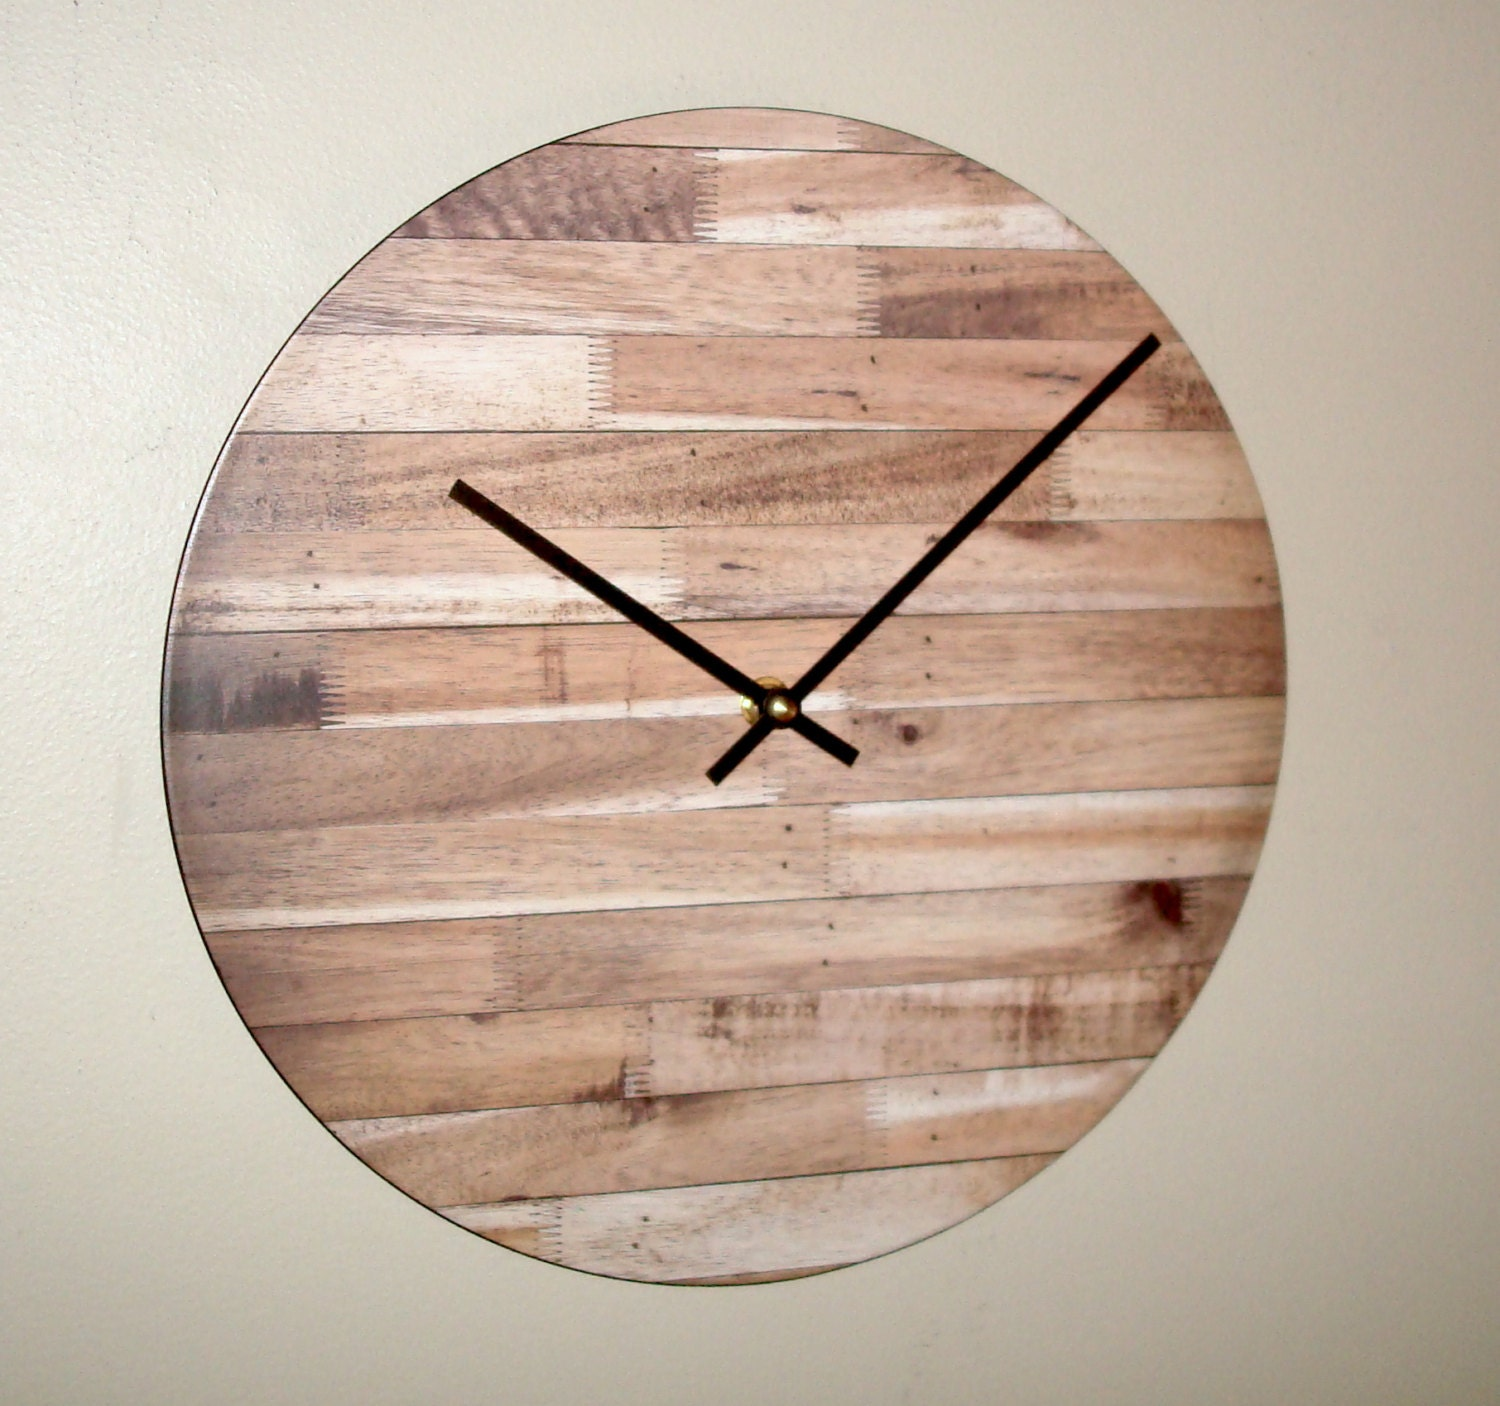 12 Inch Rustic Wall Clock Silent Unique Rustic By Makingtimetc